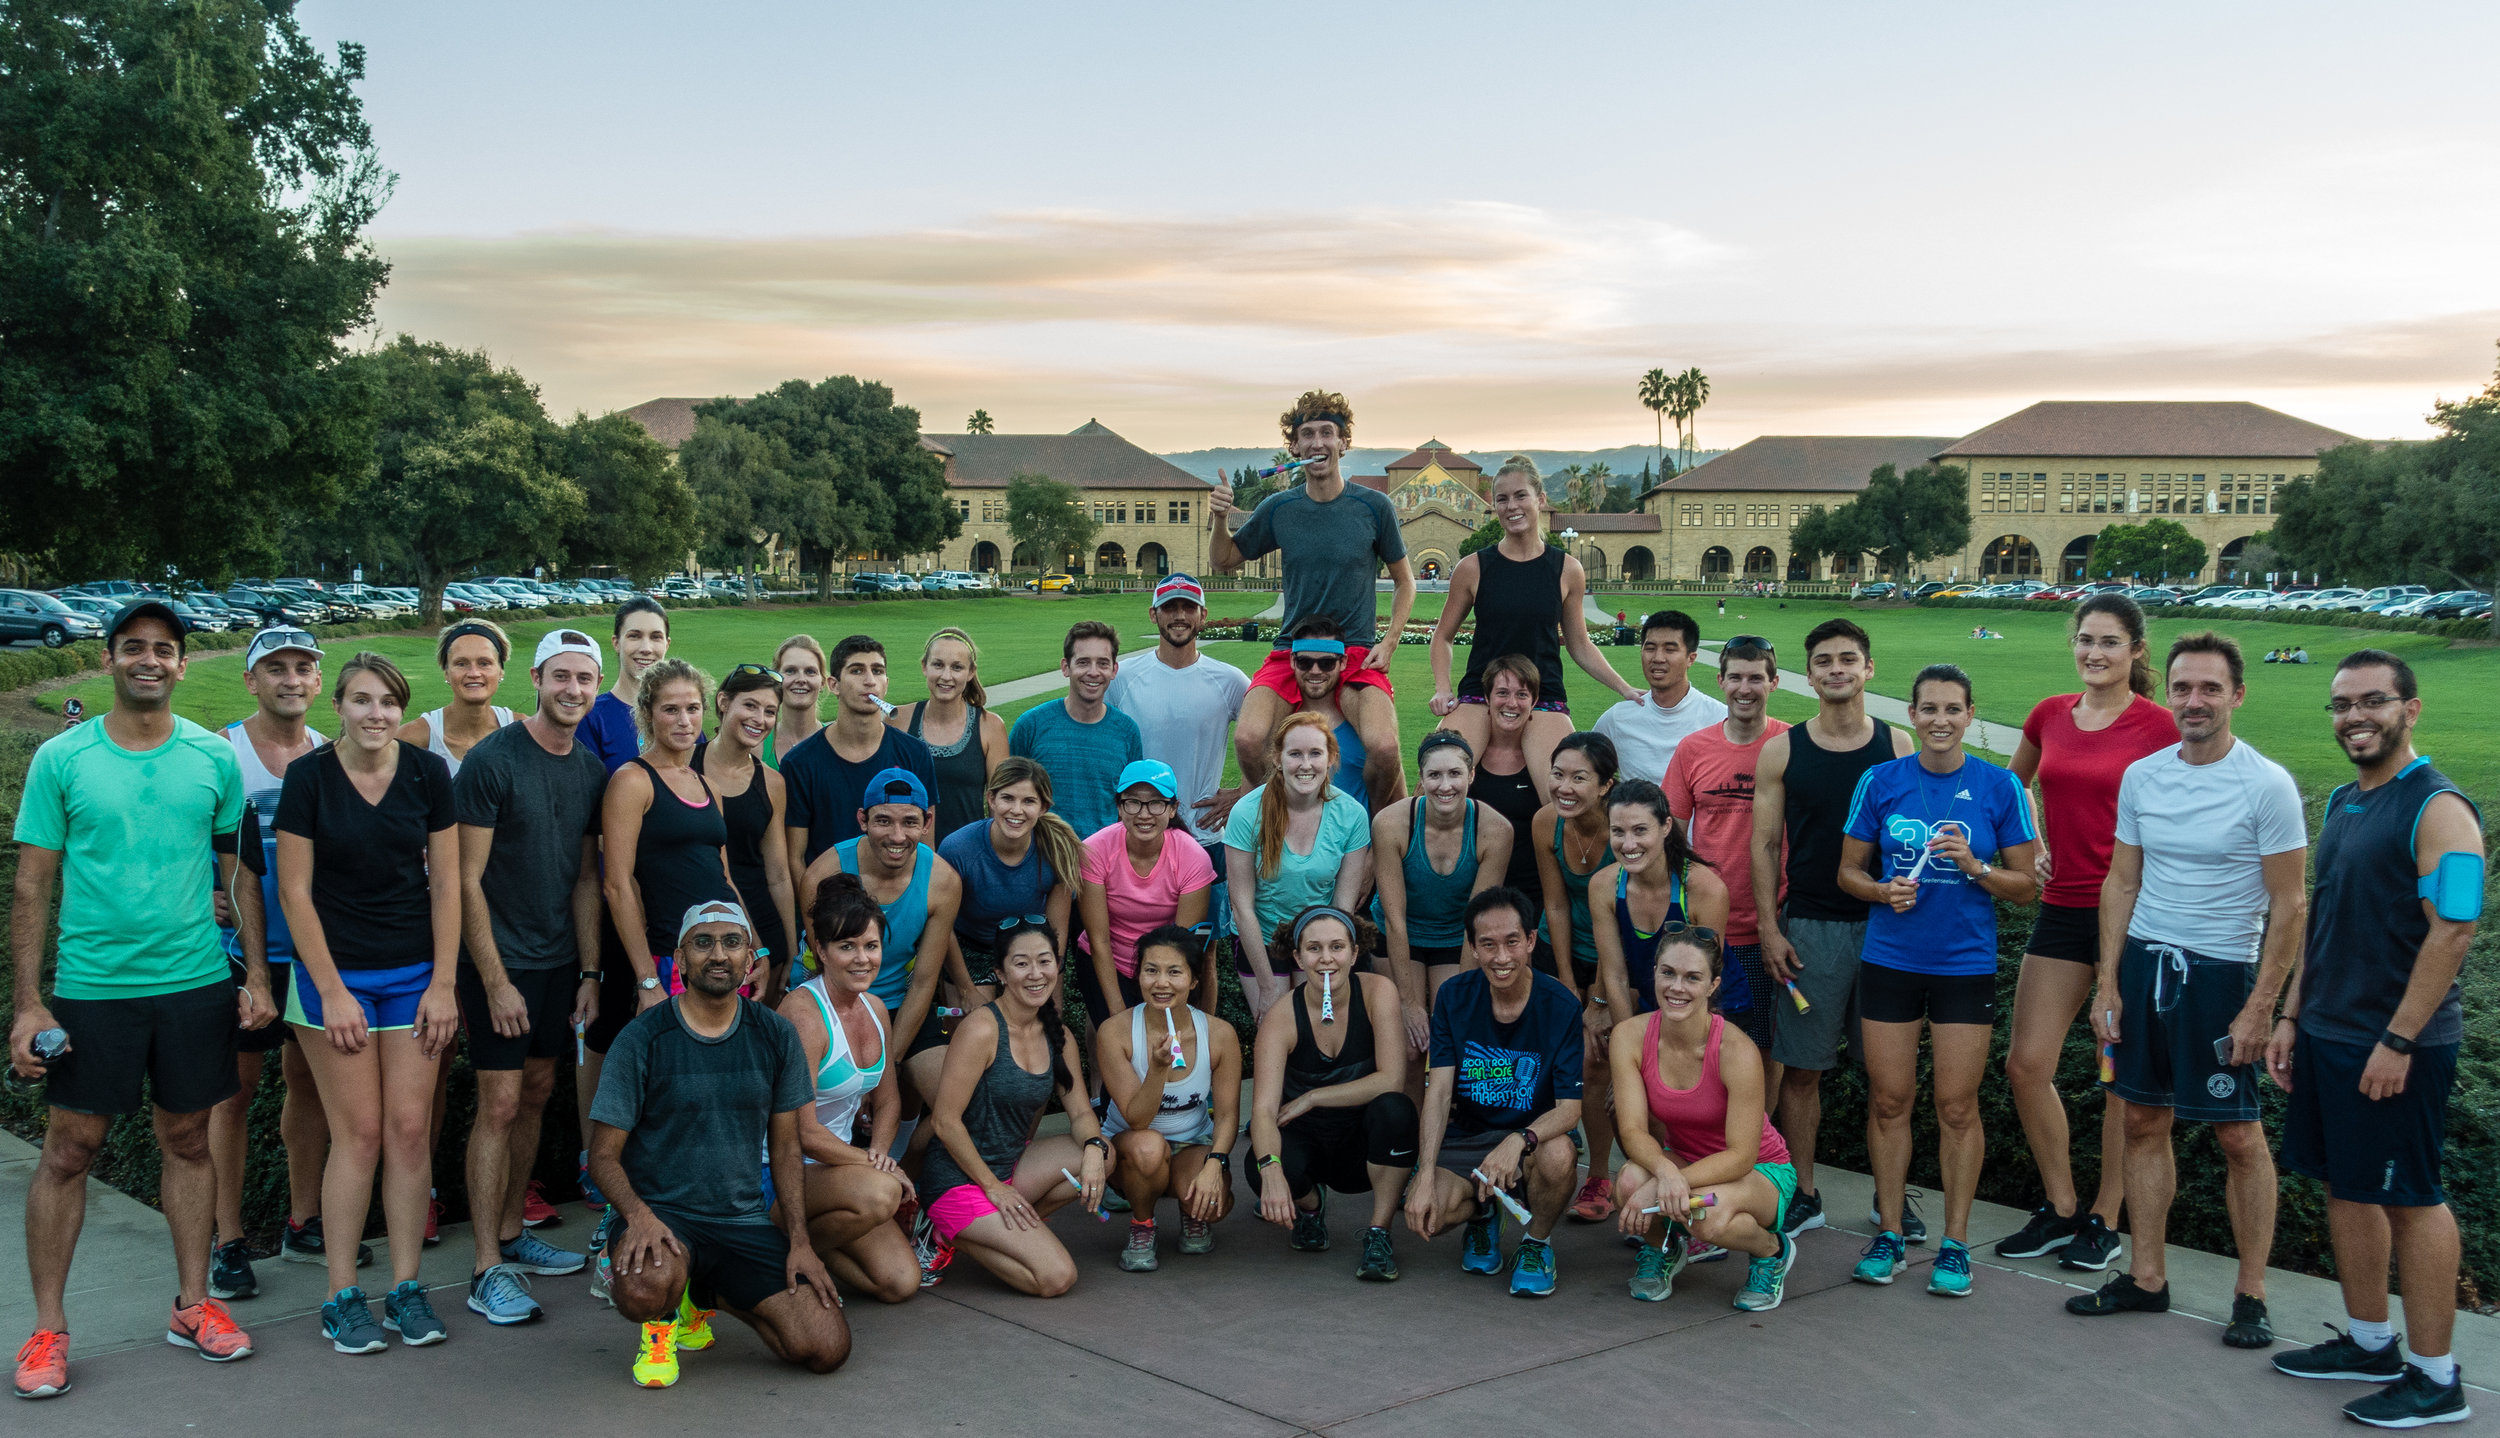 Lululemon Palo Alto Run Group   Photo credit goes to Shyamal Kapadia who has coached throughout the Bay Area. This picture was taken right before our very own community leaders Kelsey and Dave Tilley left to travel the world. We celebrated with them in typical run club style with a run around Stanford's campus loop.